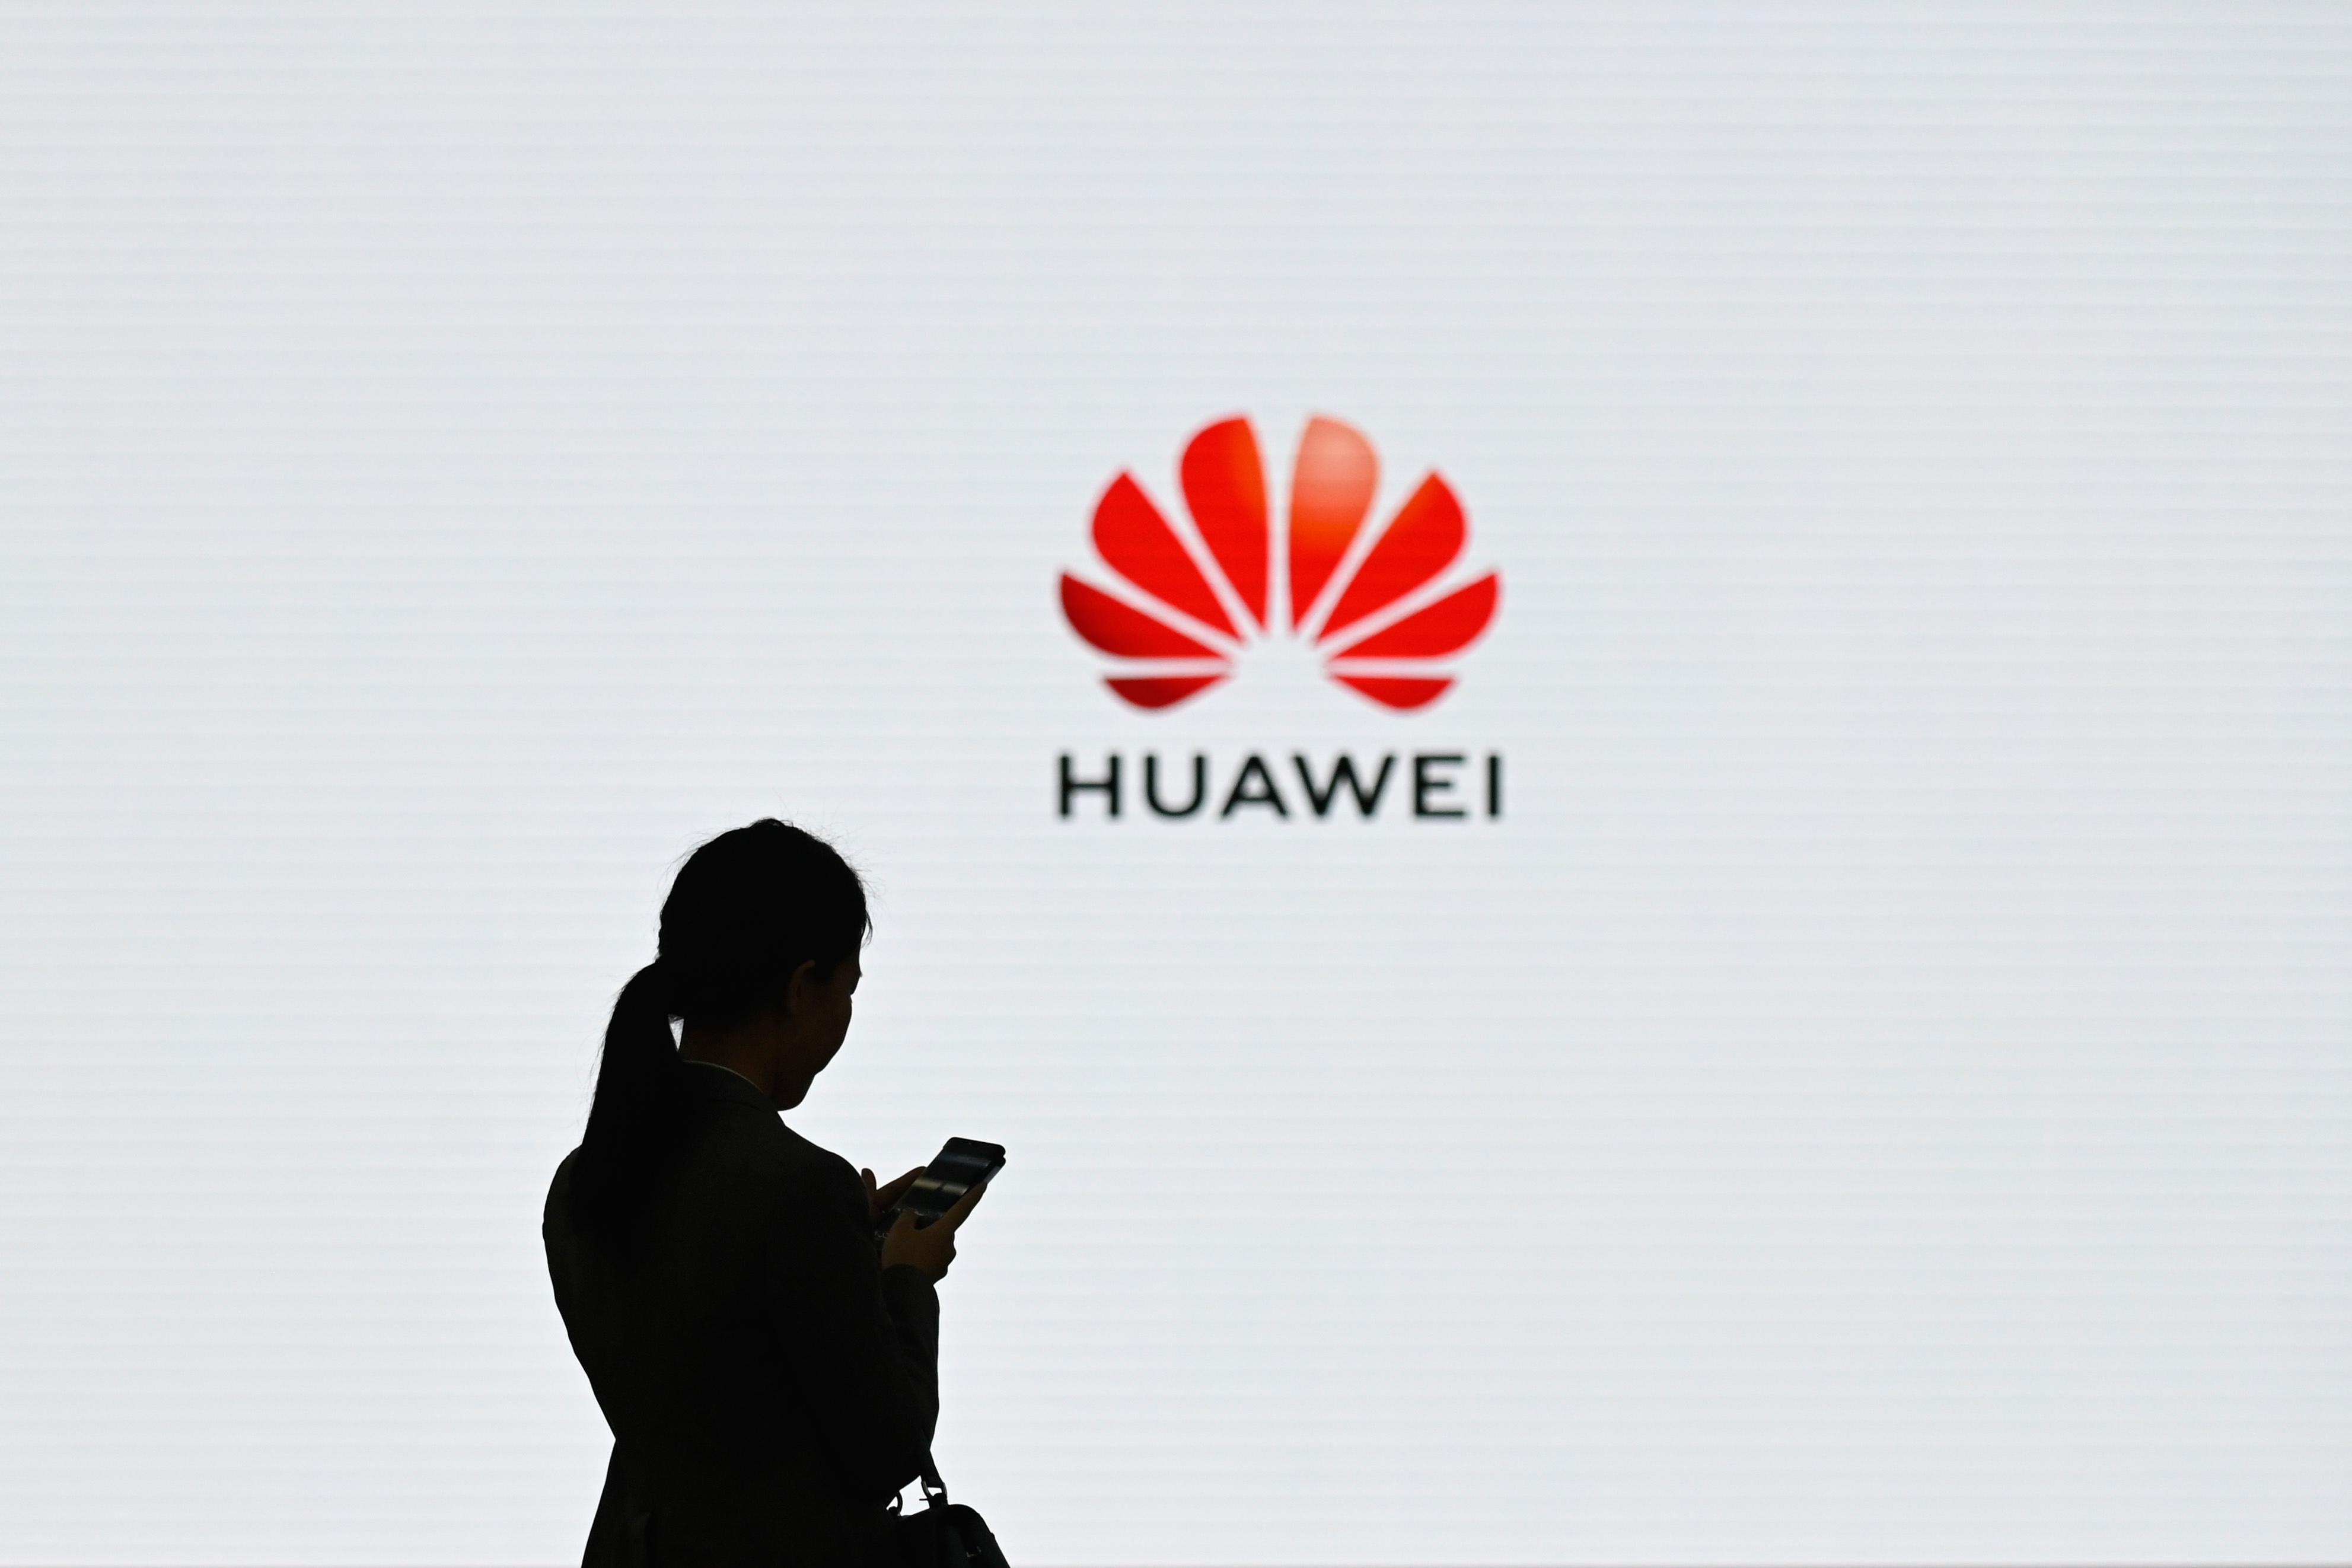 Former Homeland Security Chief: Change in UK prime minister should lead to change in policy on Huawei